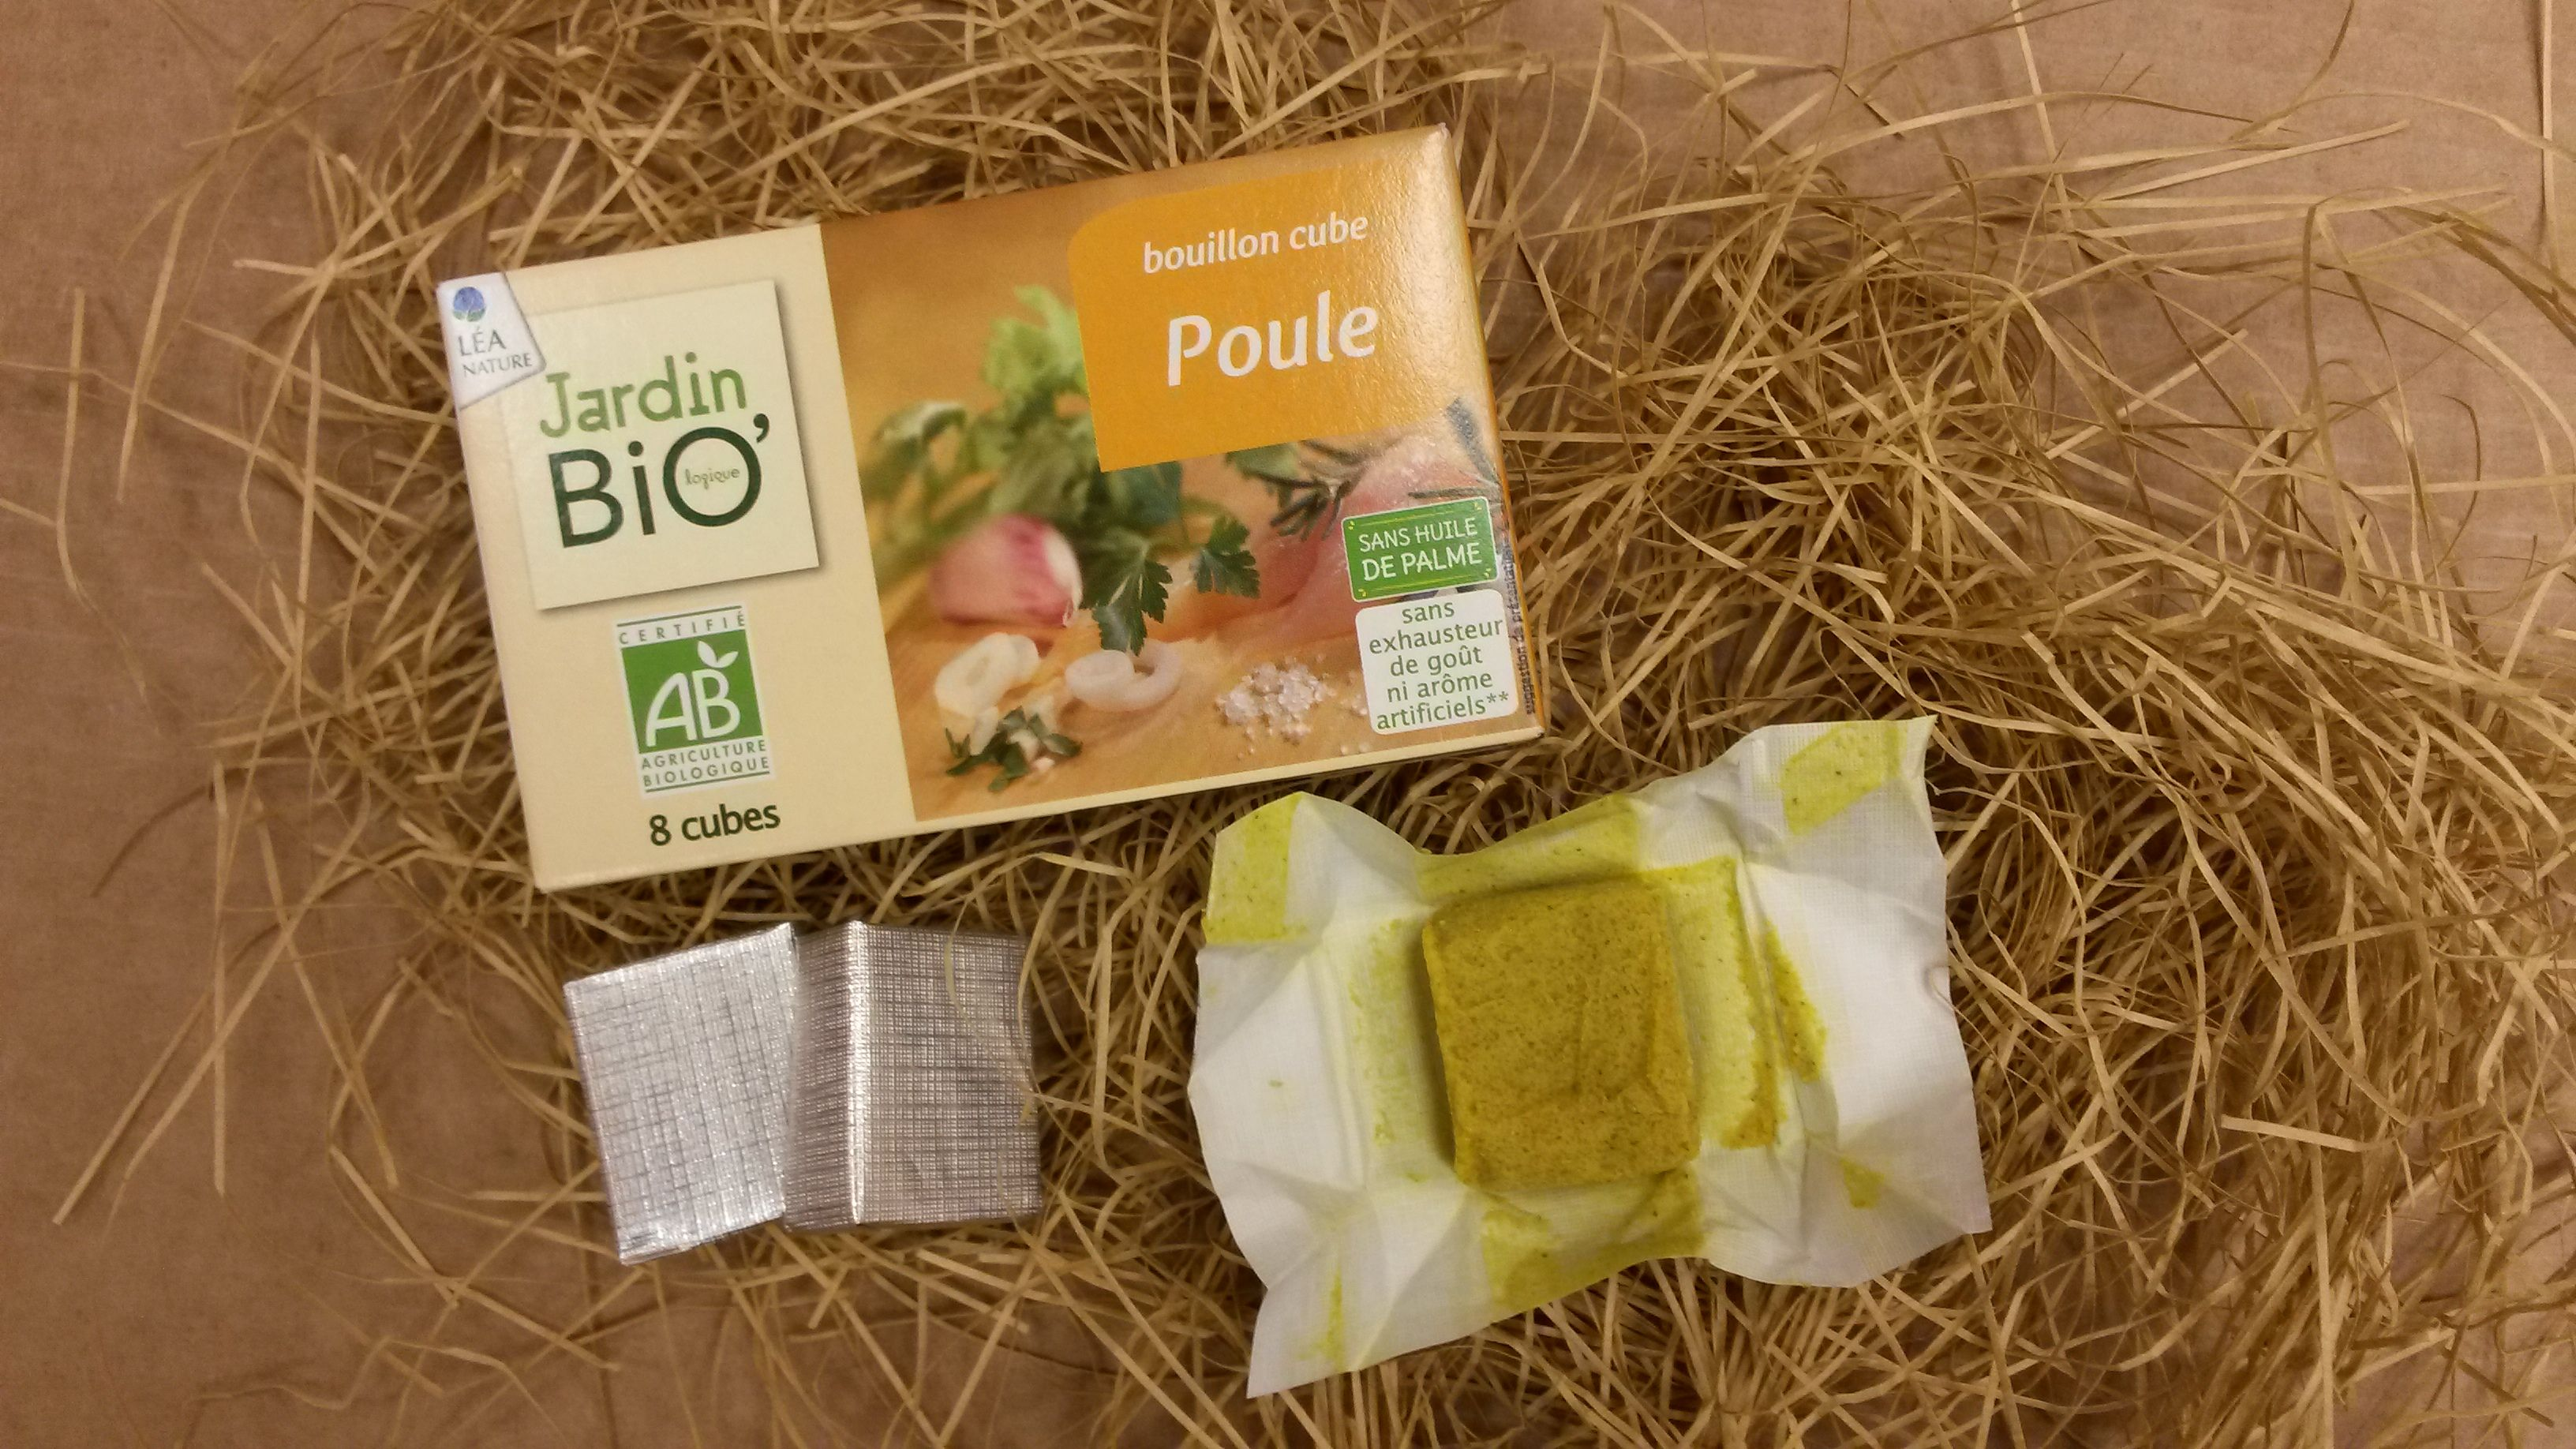 Lookbio for Jardin bio 2015